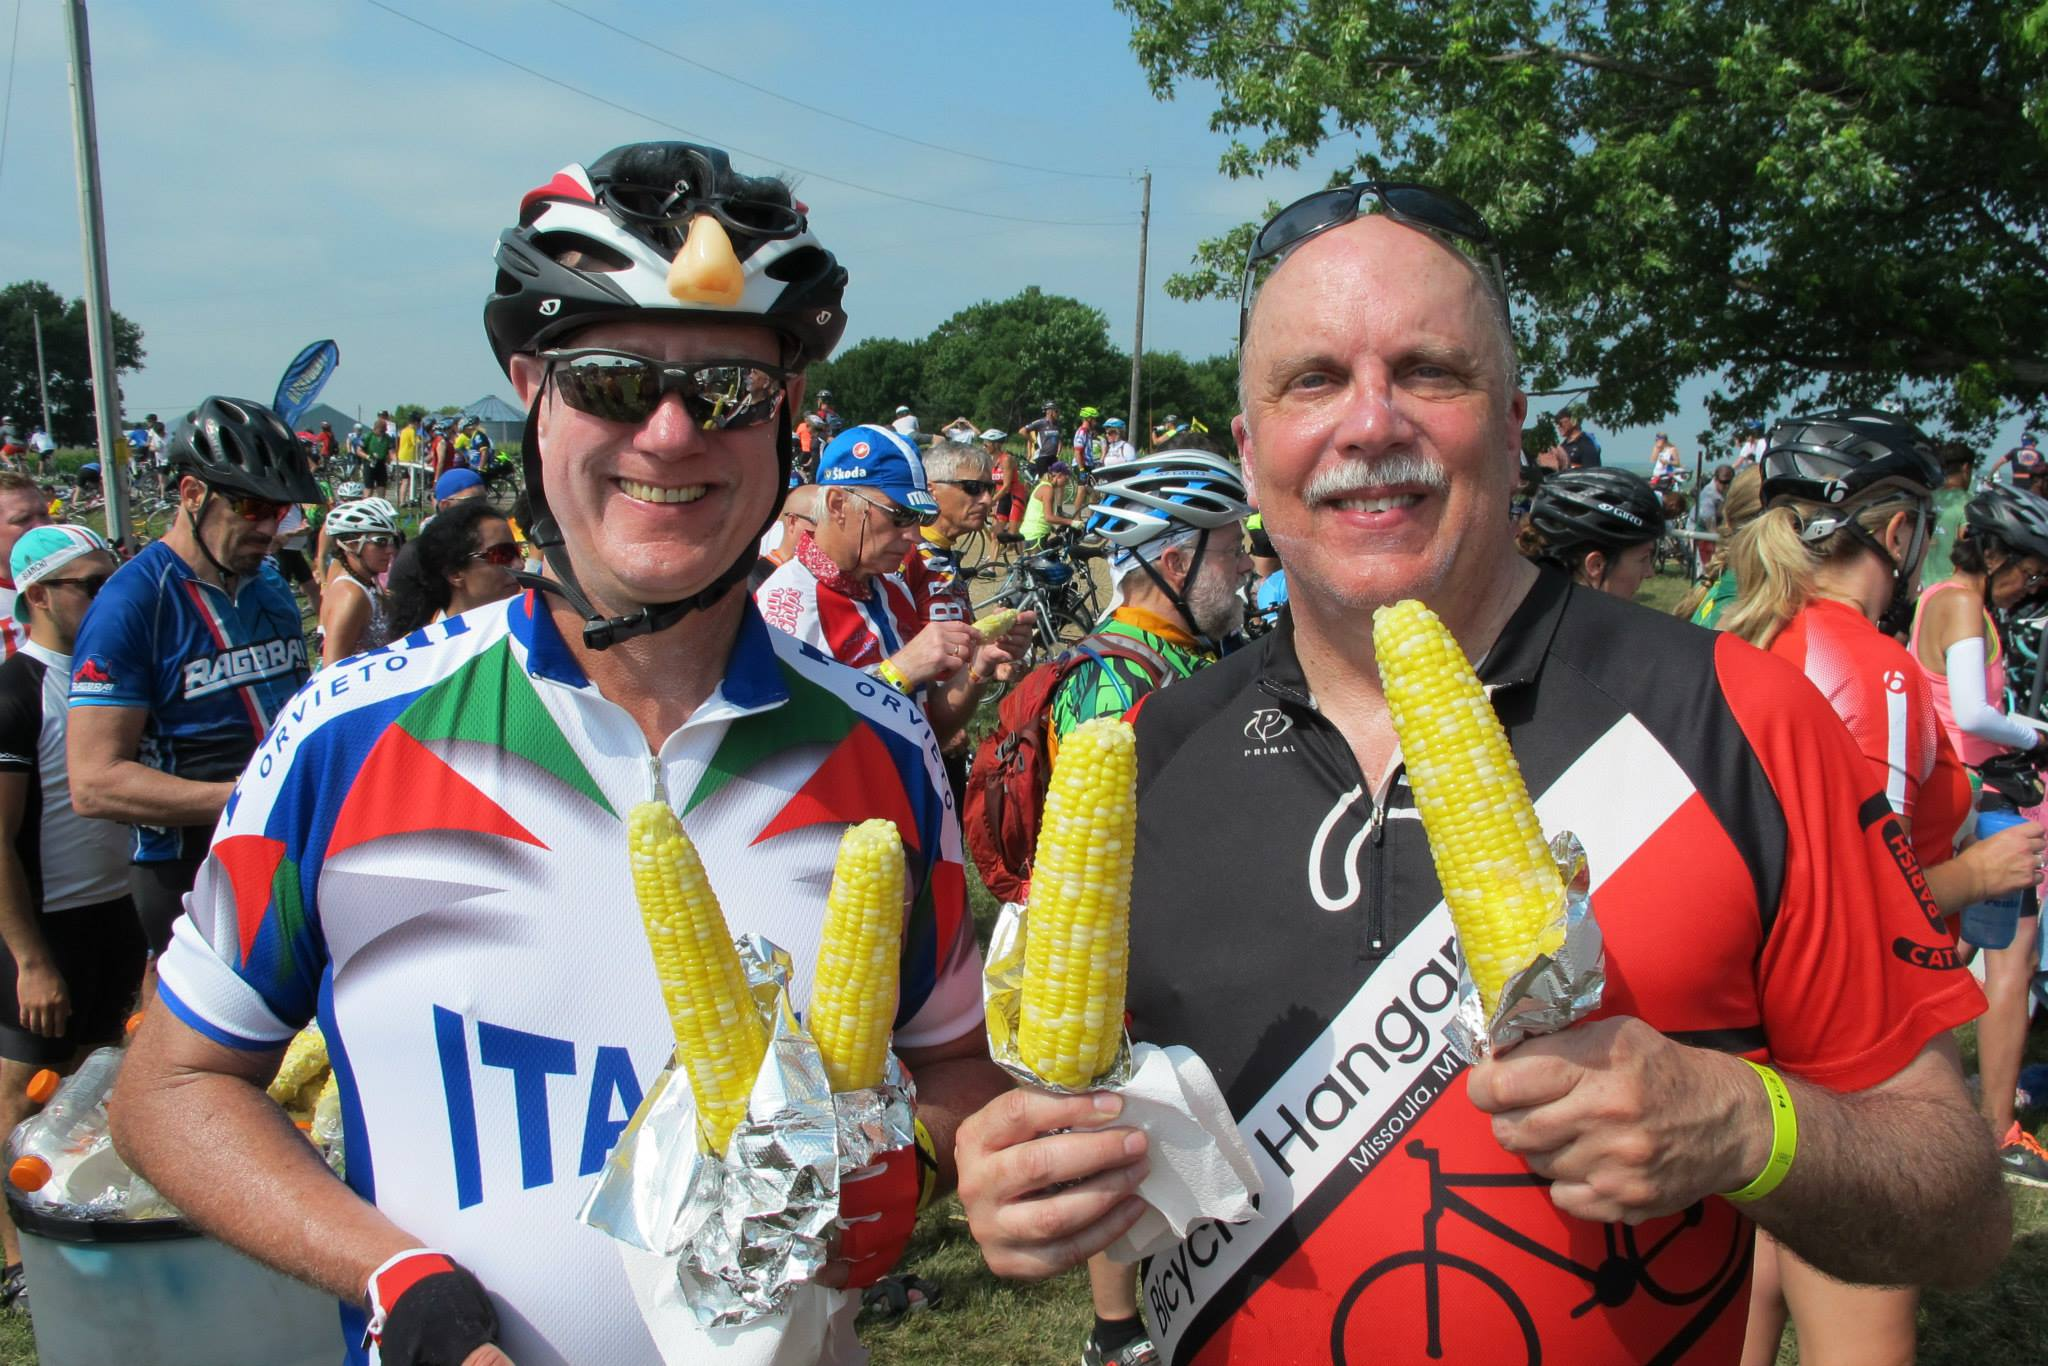 Birkbros prepare to relieve RAGBRAI of another four ears of spectacularly yummy sweet corn.